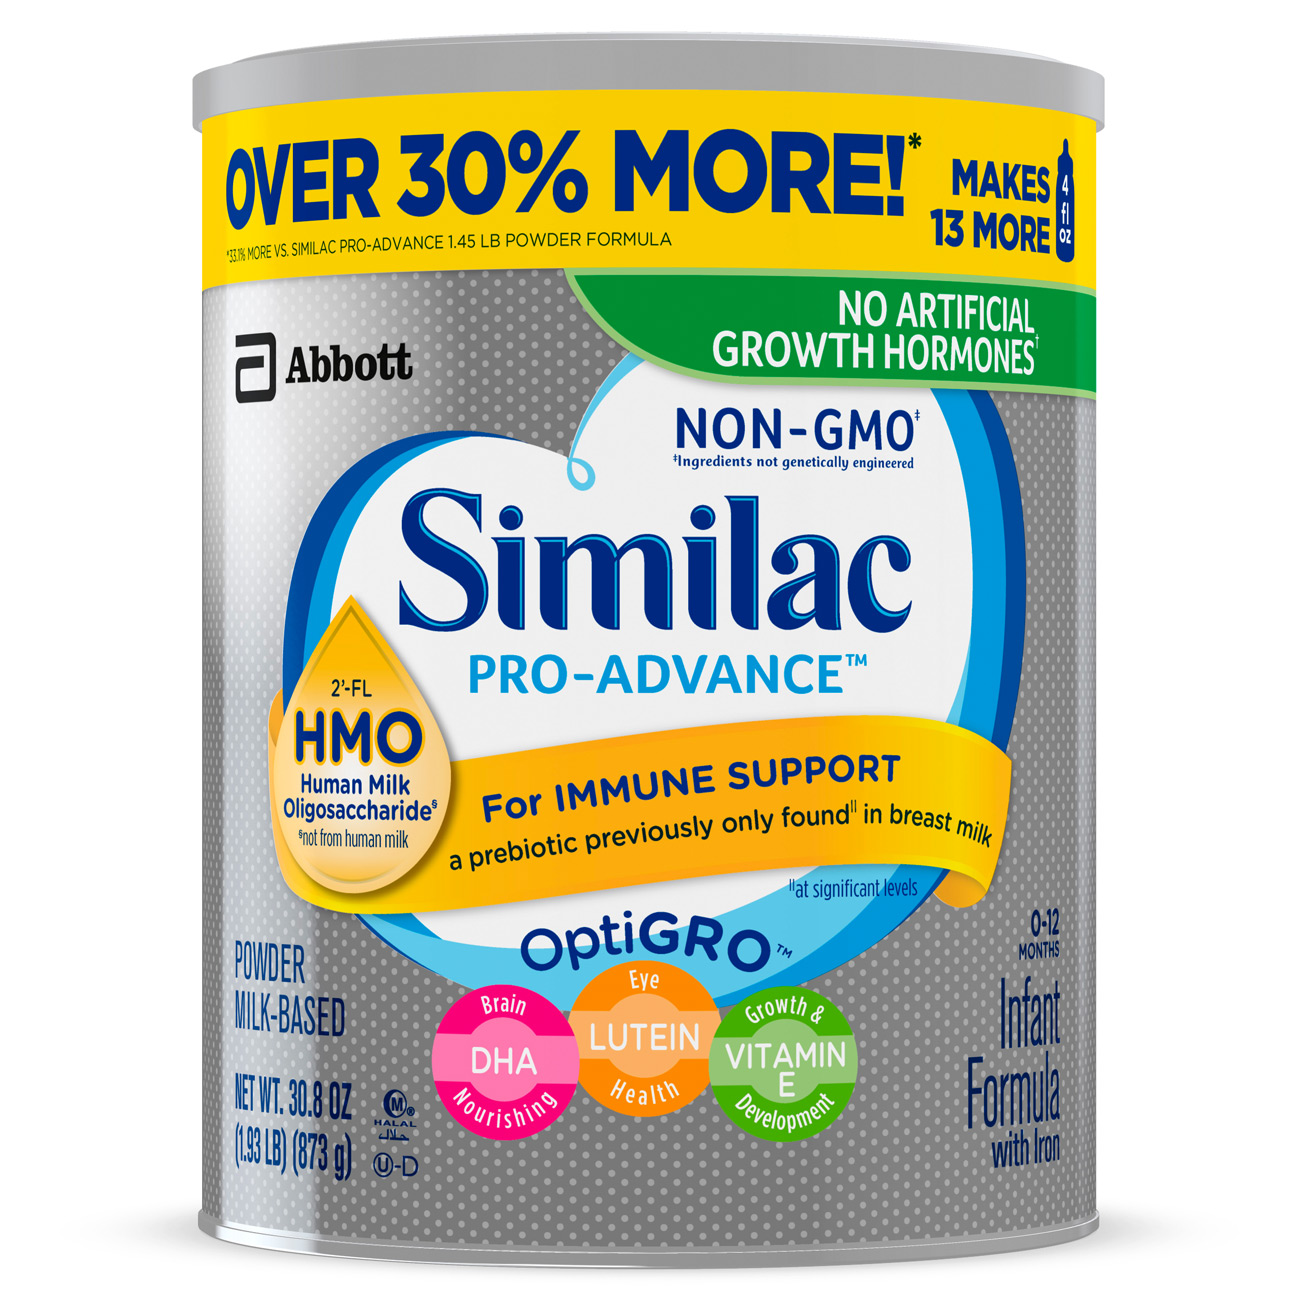 Similac Pro-Advance Infant Formula with Iron, with 2'-FL HMO, For Immune Support, Baby Formula, Powder, 30.8 ounces